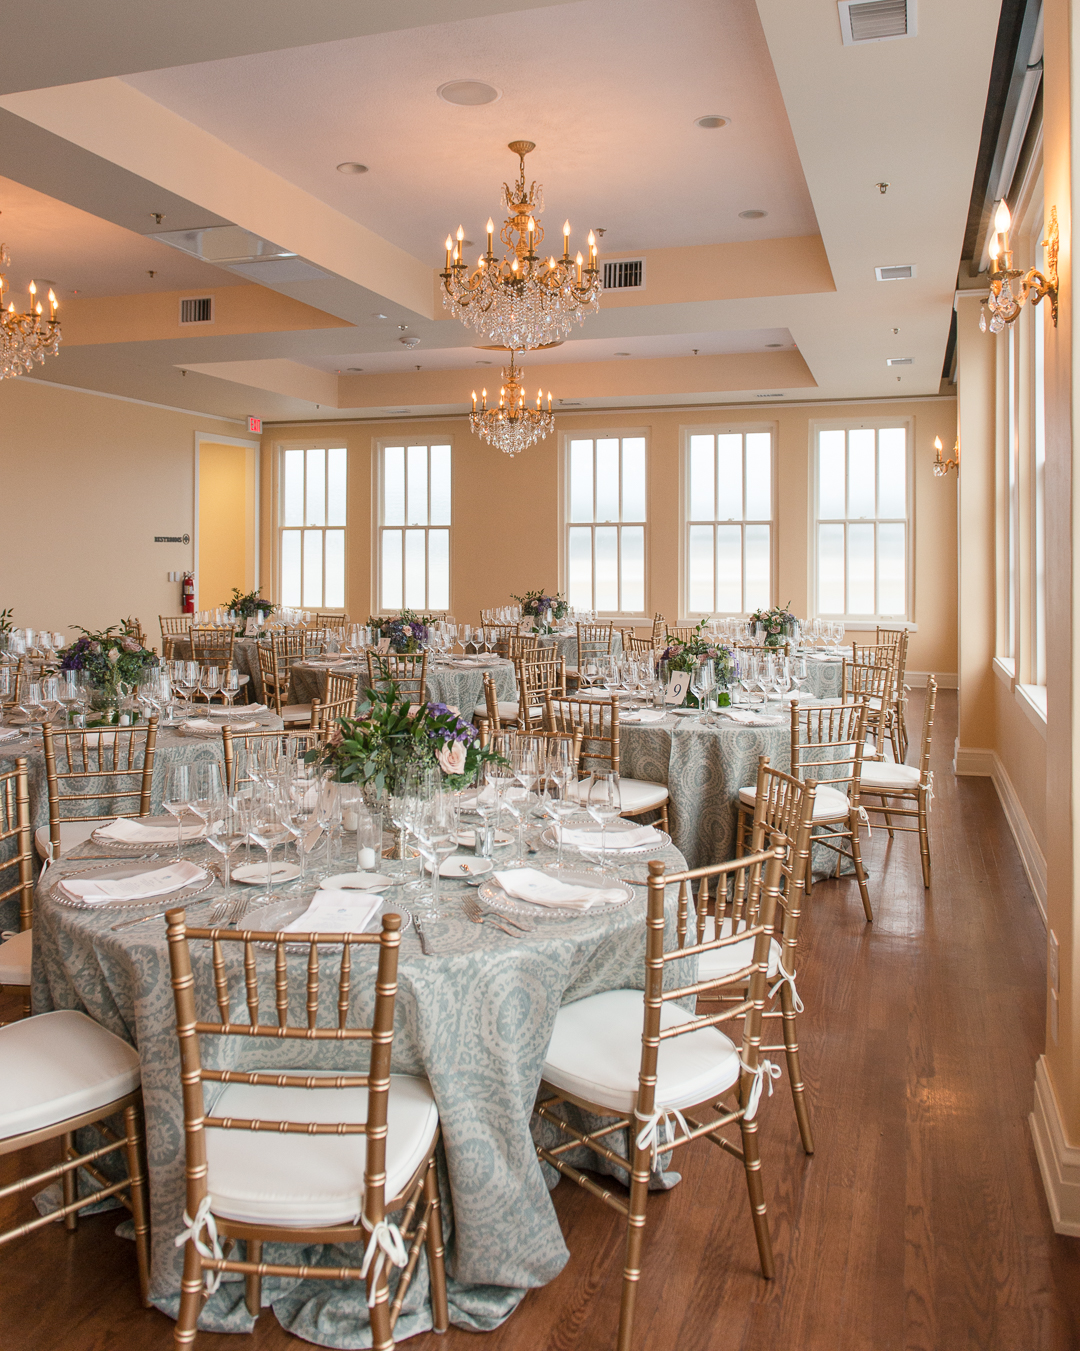 Elegant gold Chiavari chairs surround tables draped in blue and white linens. Tables are set with fine white china and crystal goblets. Centerpieces of hydrangeas, roses, and ferns are placed on each table.